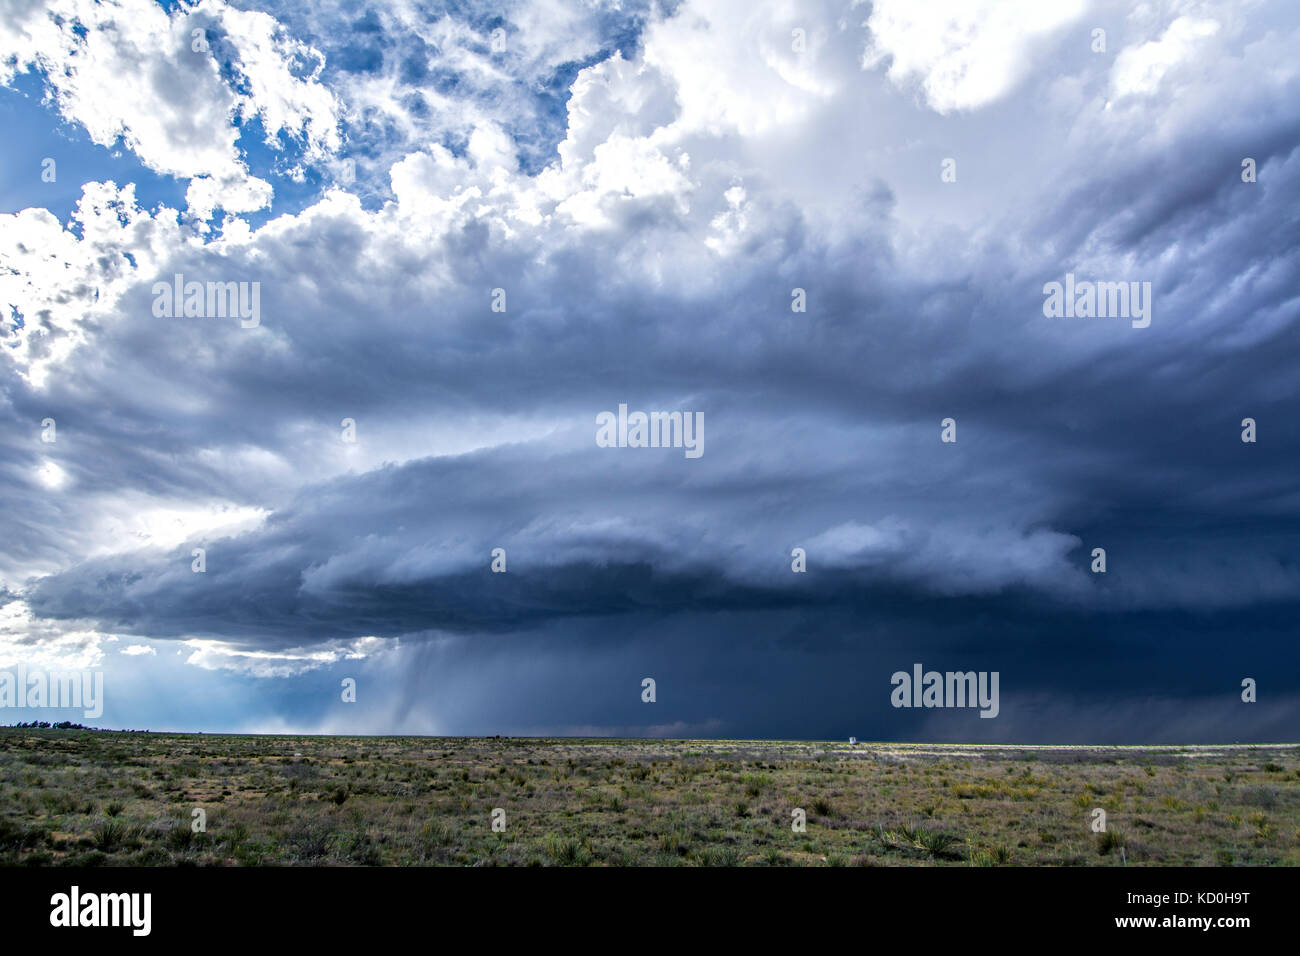 Supercell thunderstorm spins over desert, Tatum, New Mexico, USA - Stock Image